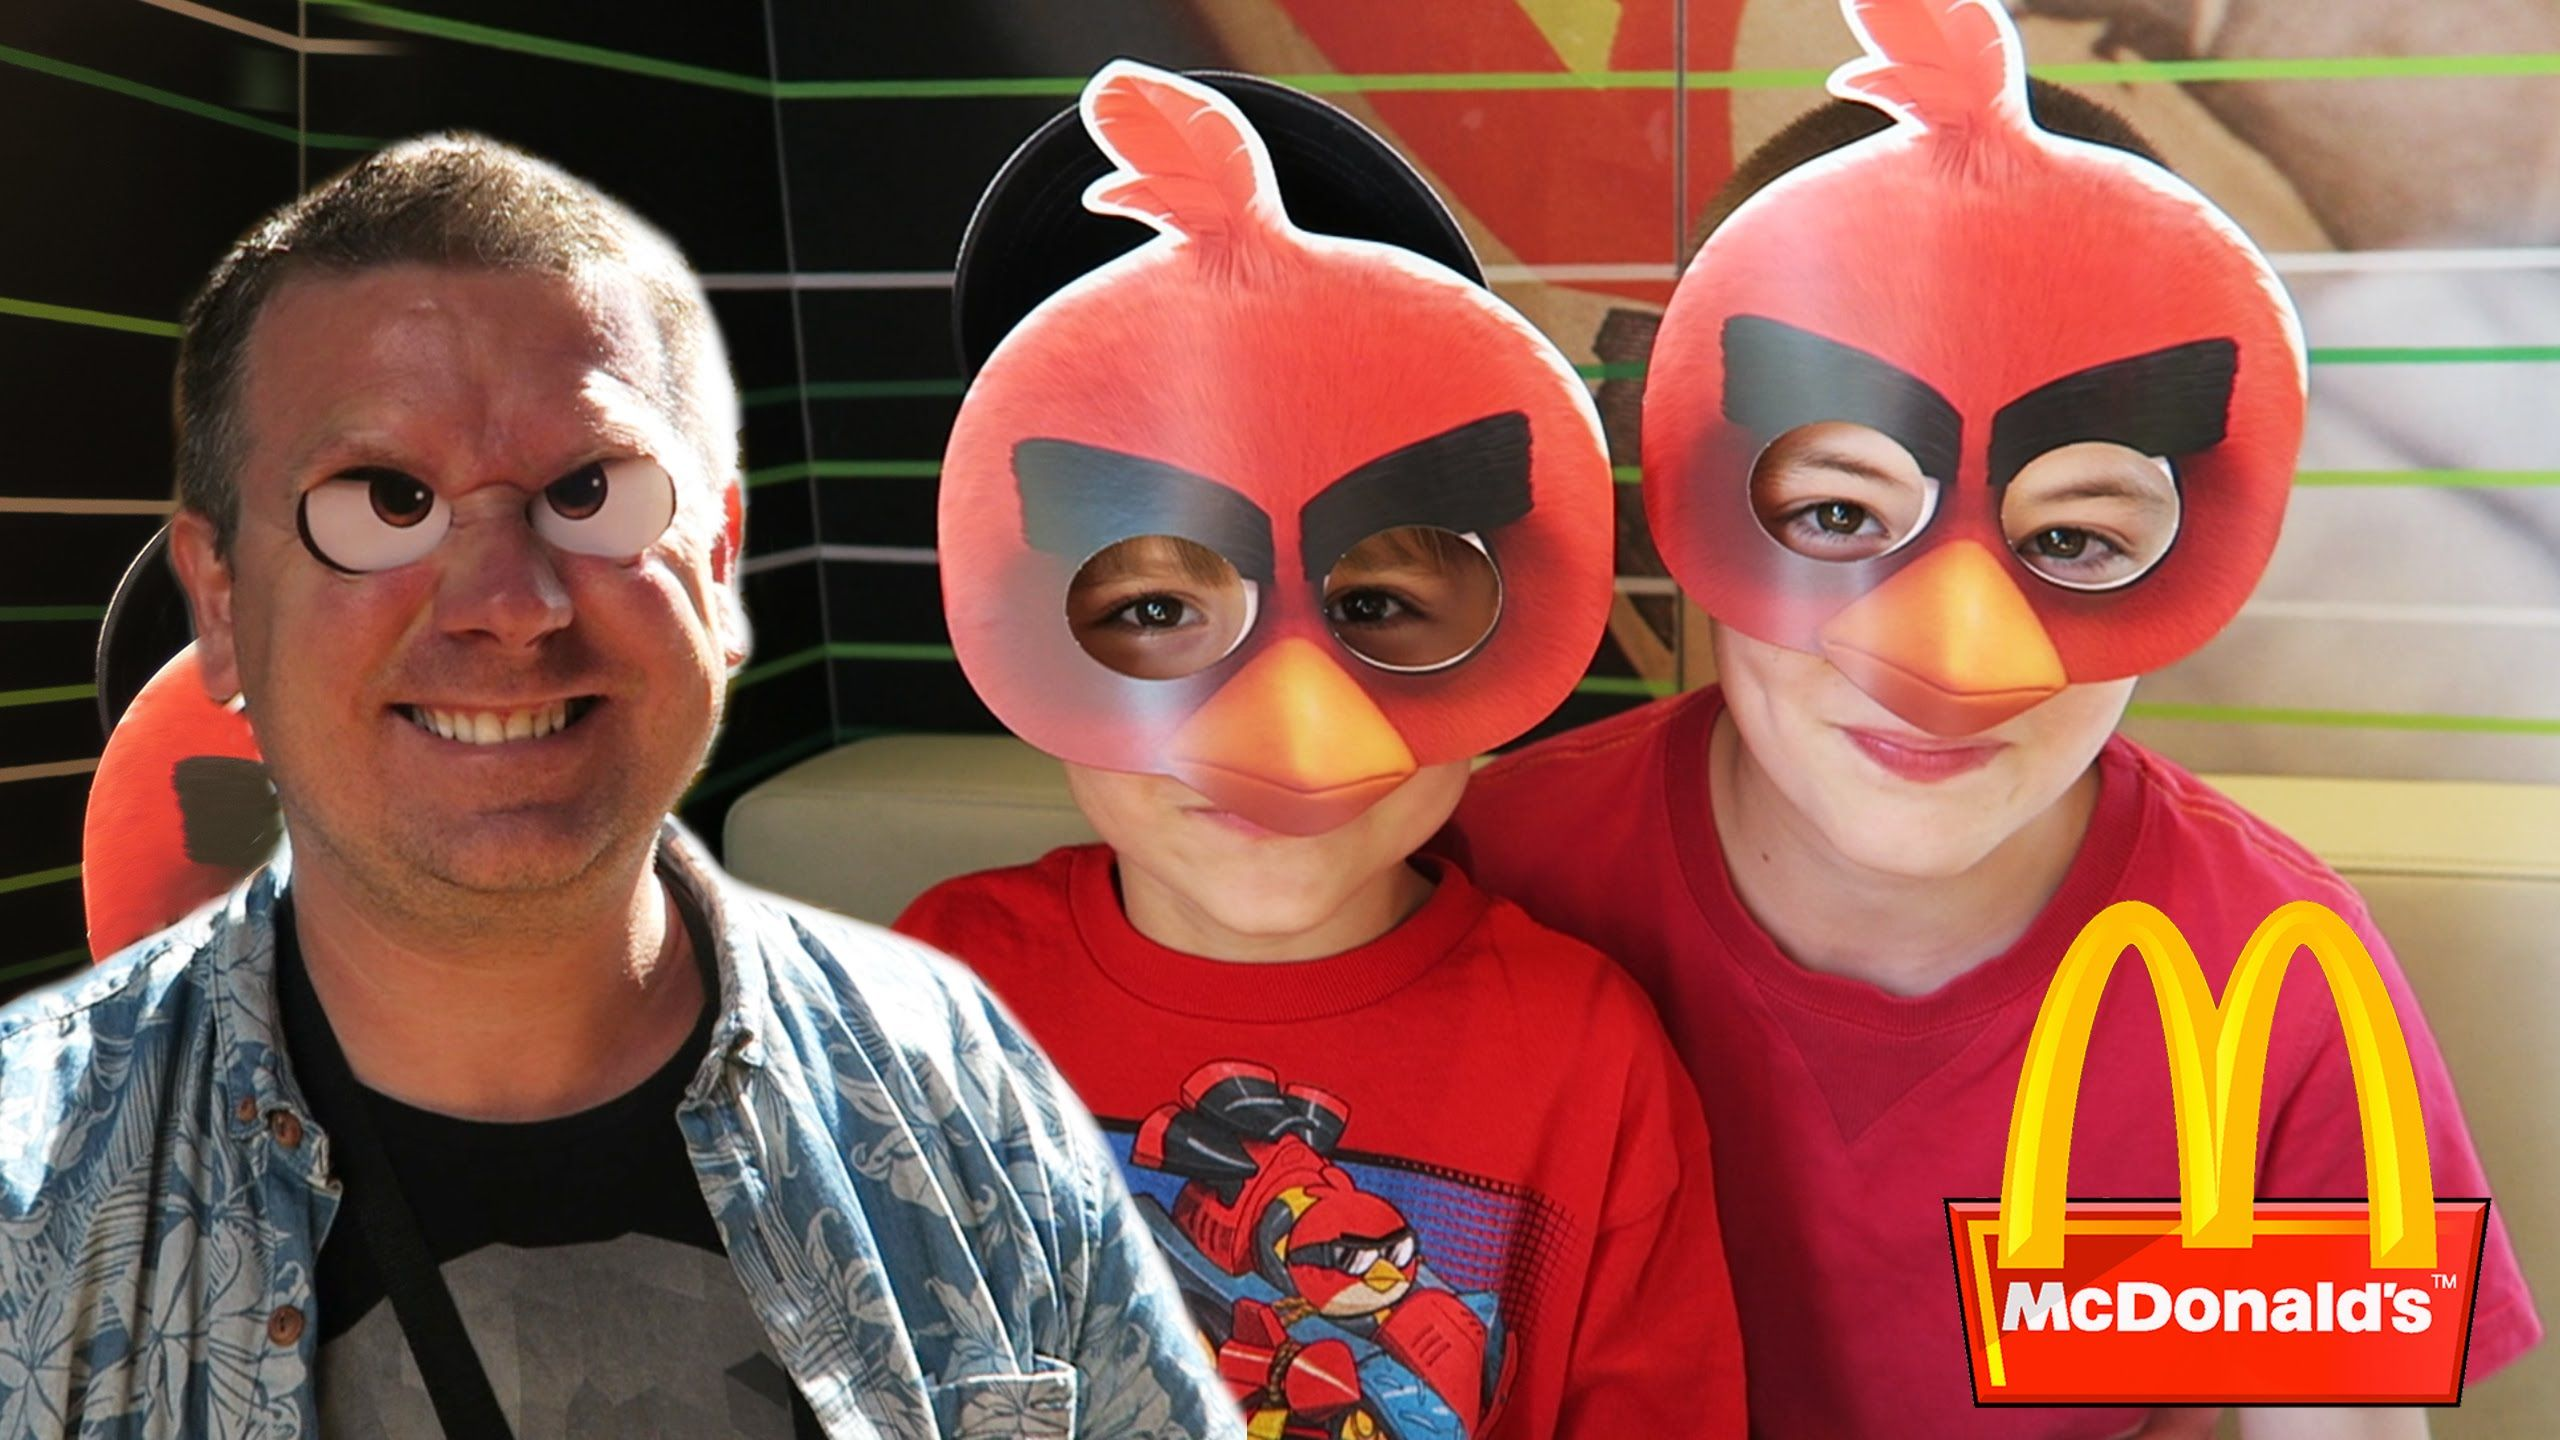 mcdonald's happy meal toys - the angry birds movie day | for kids